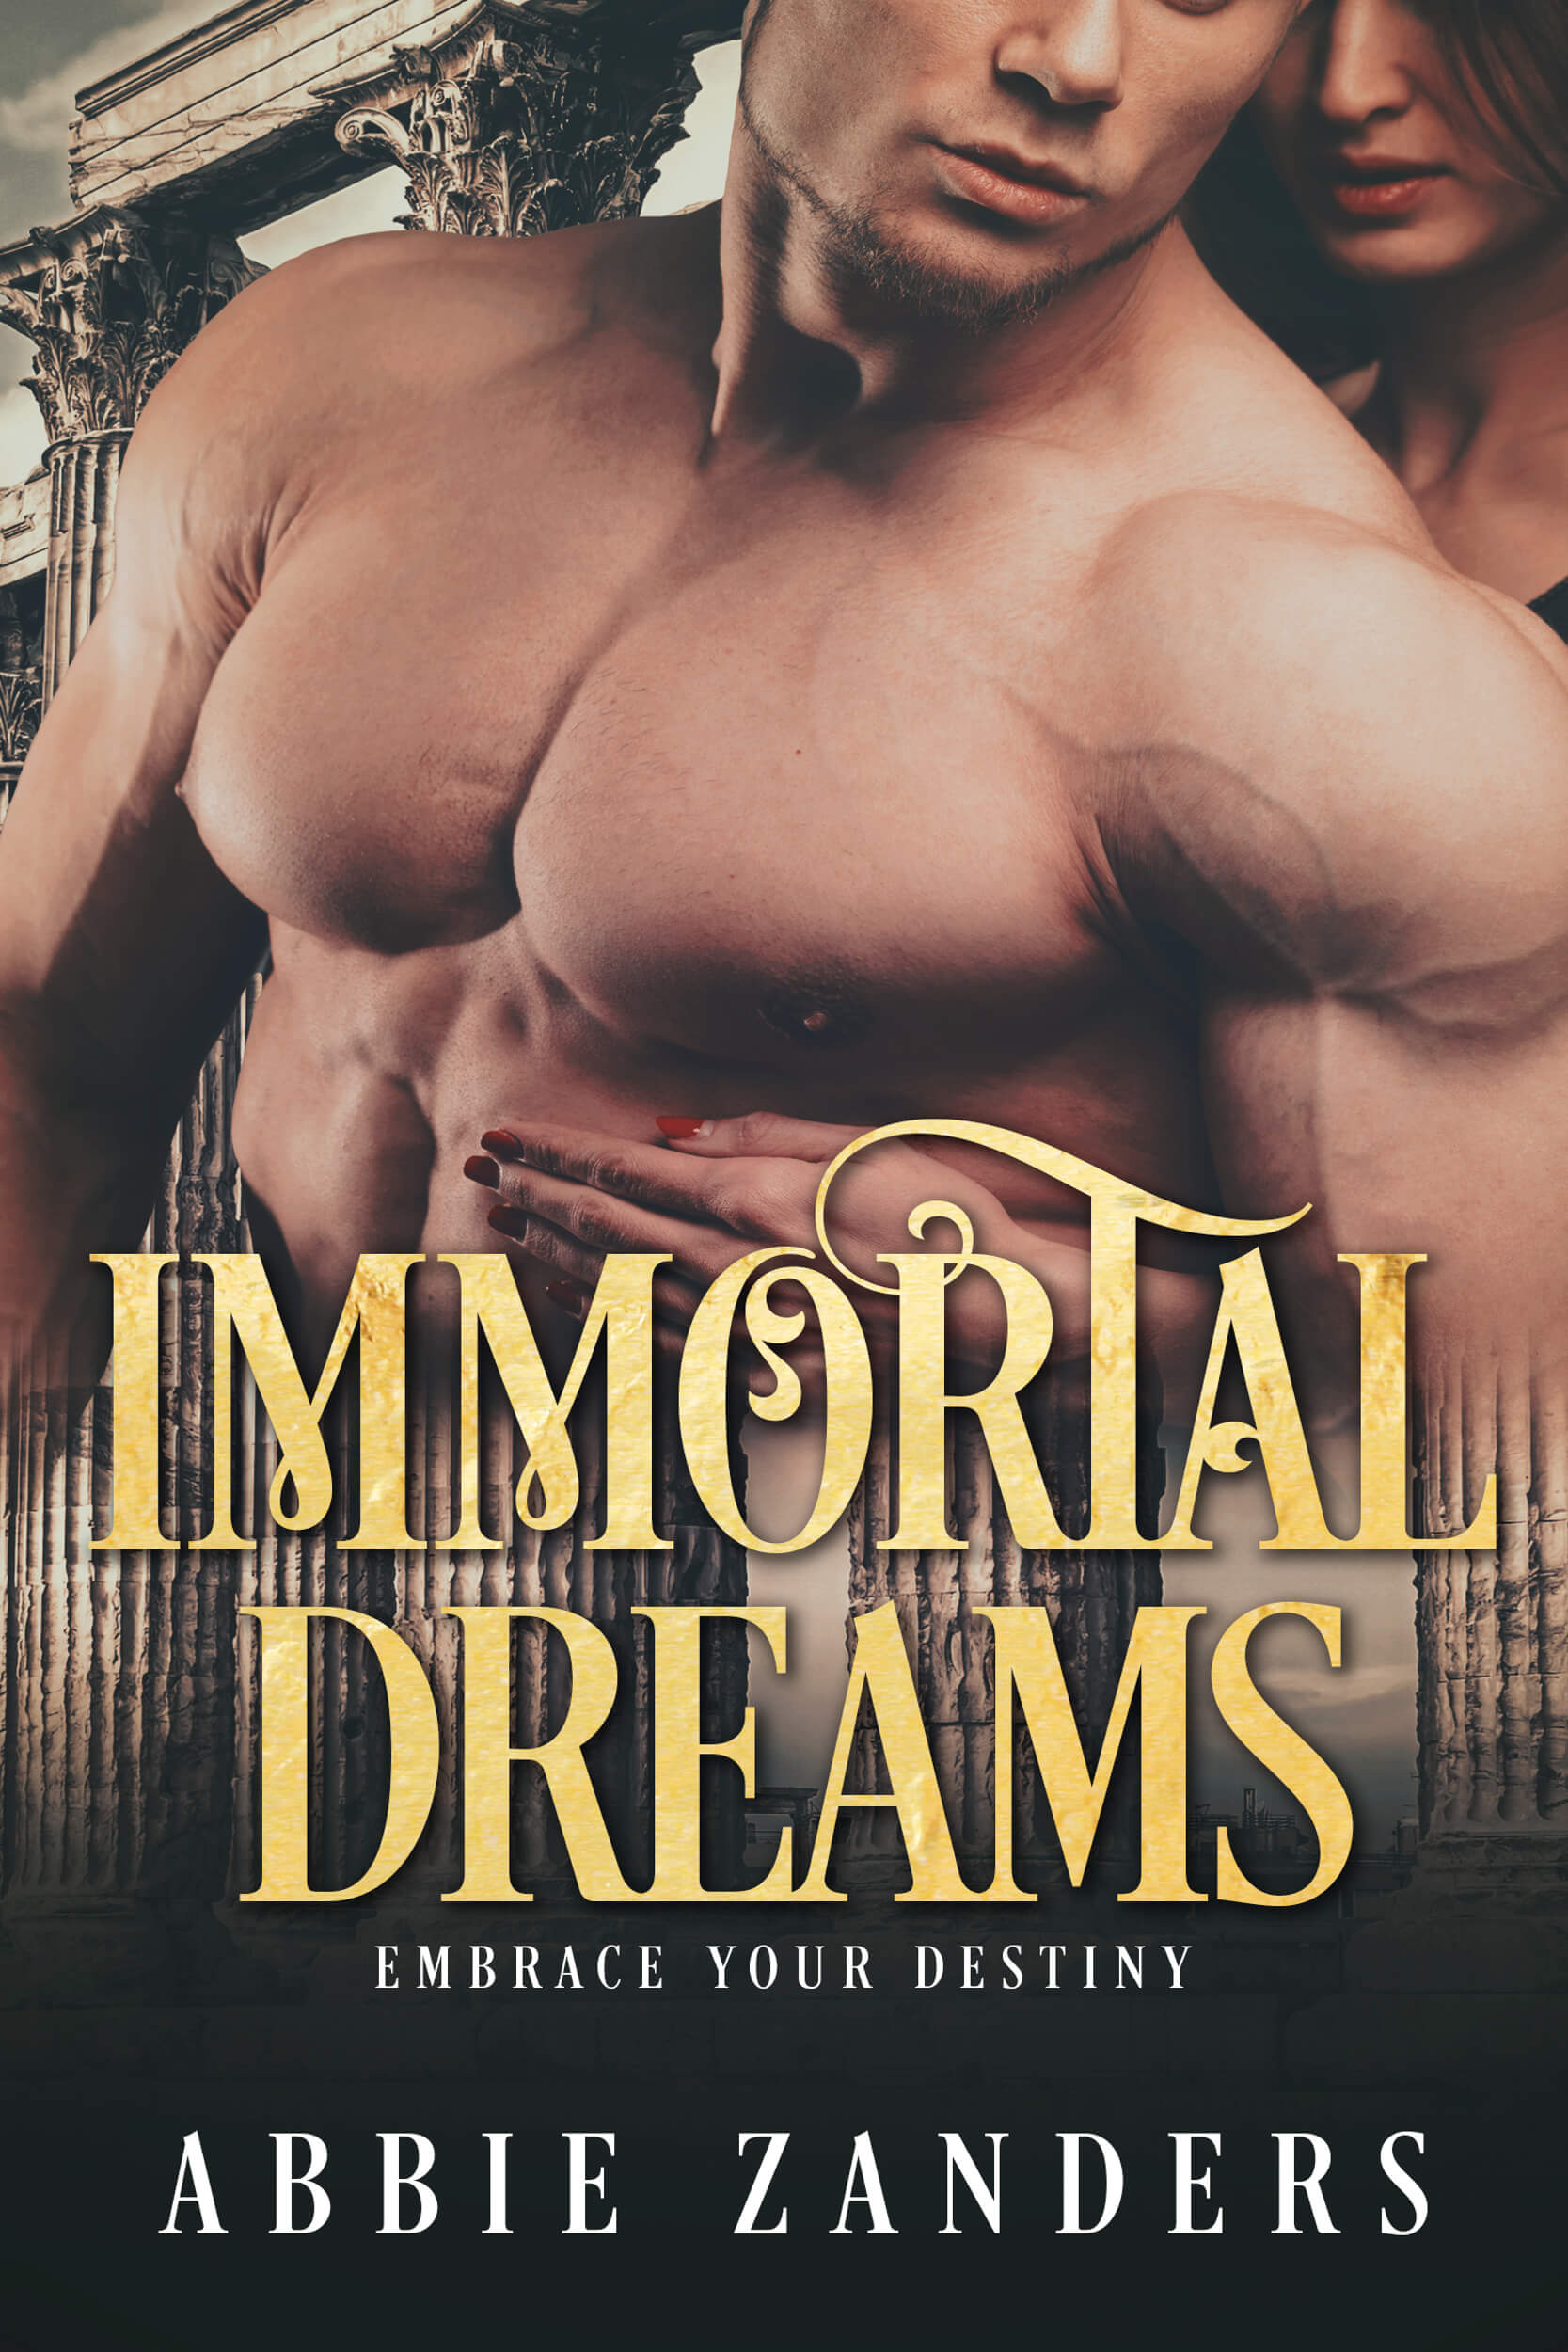 ImmortalDreams